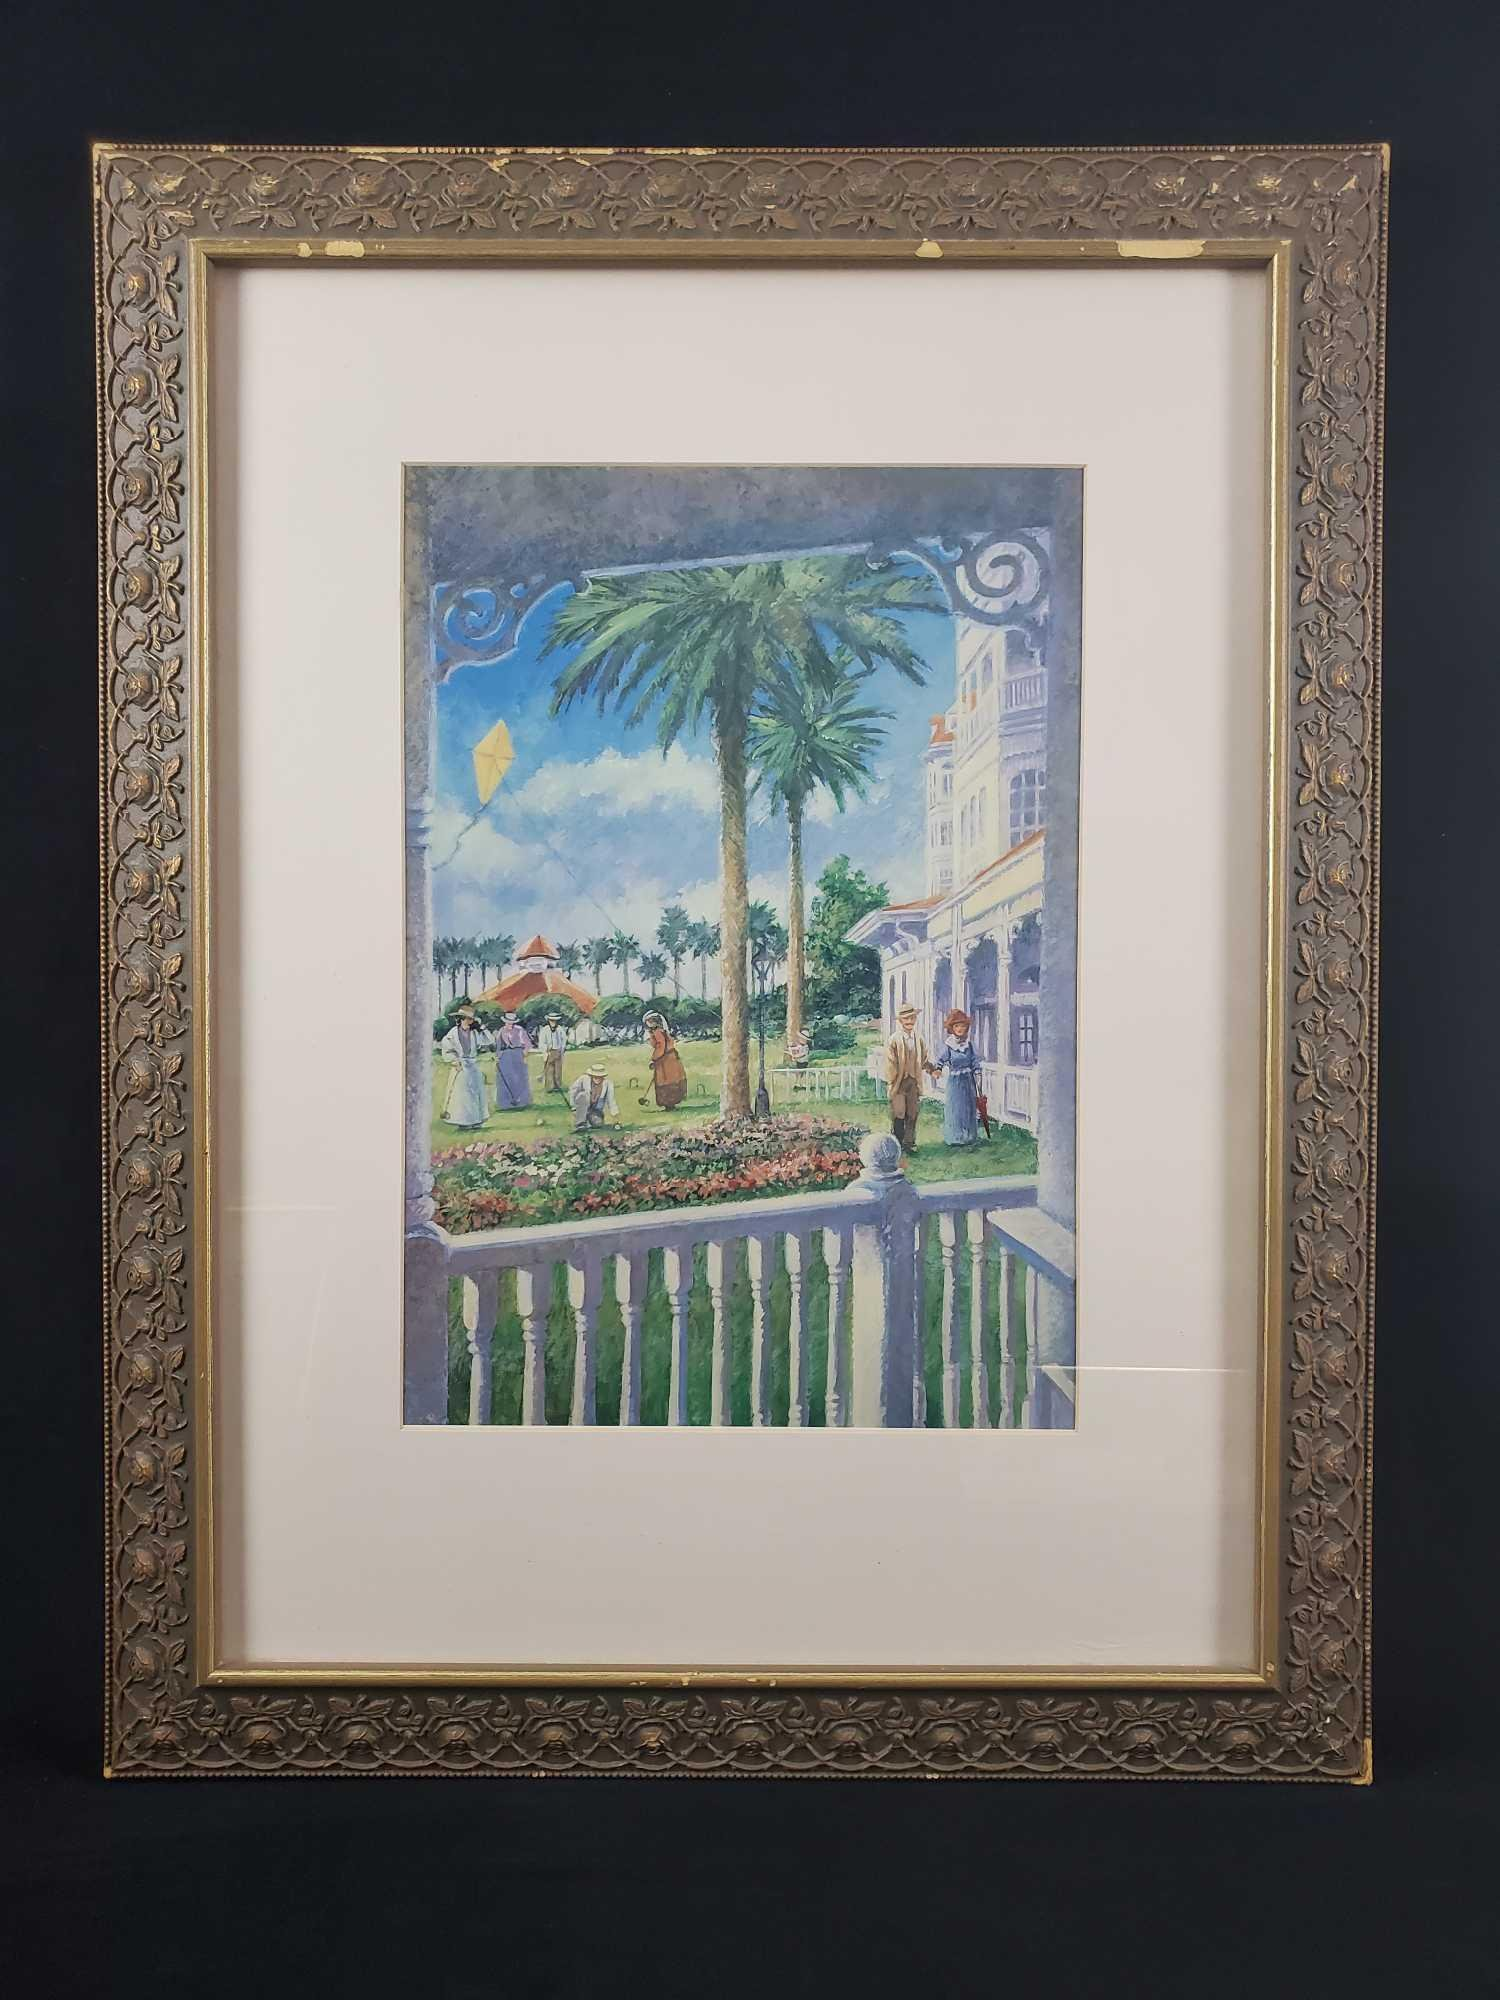 Framed Art Disney Grand Floridian Hotel A